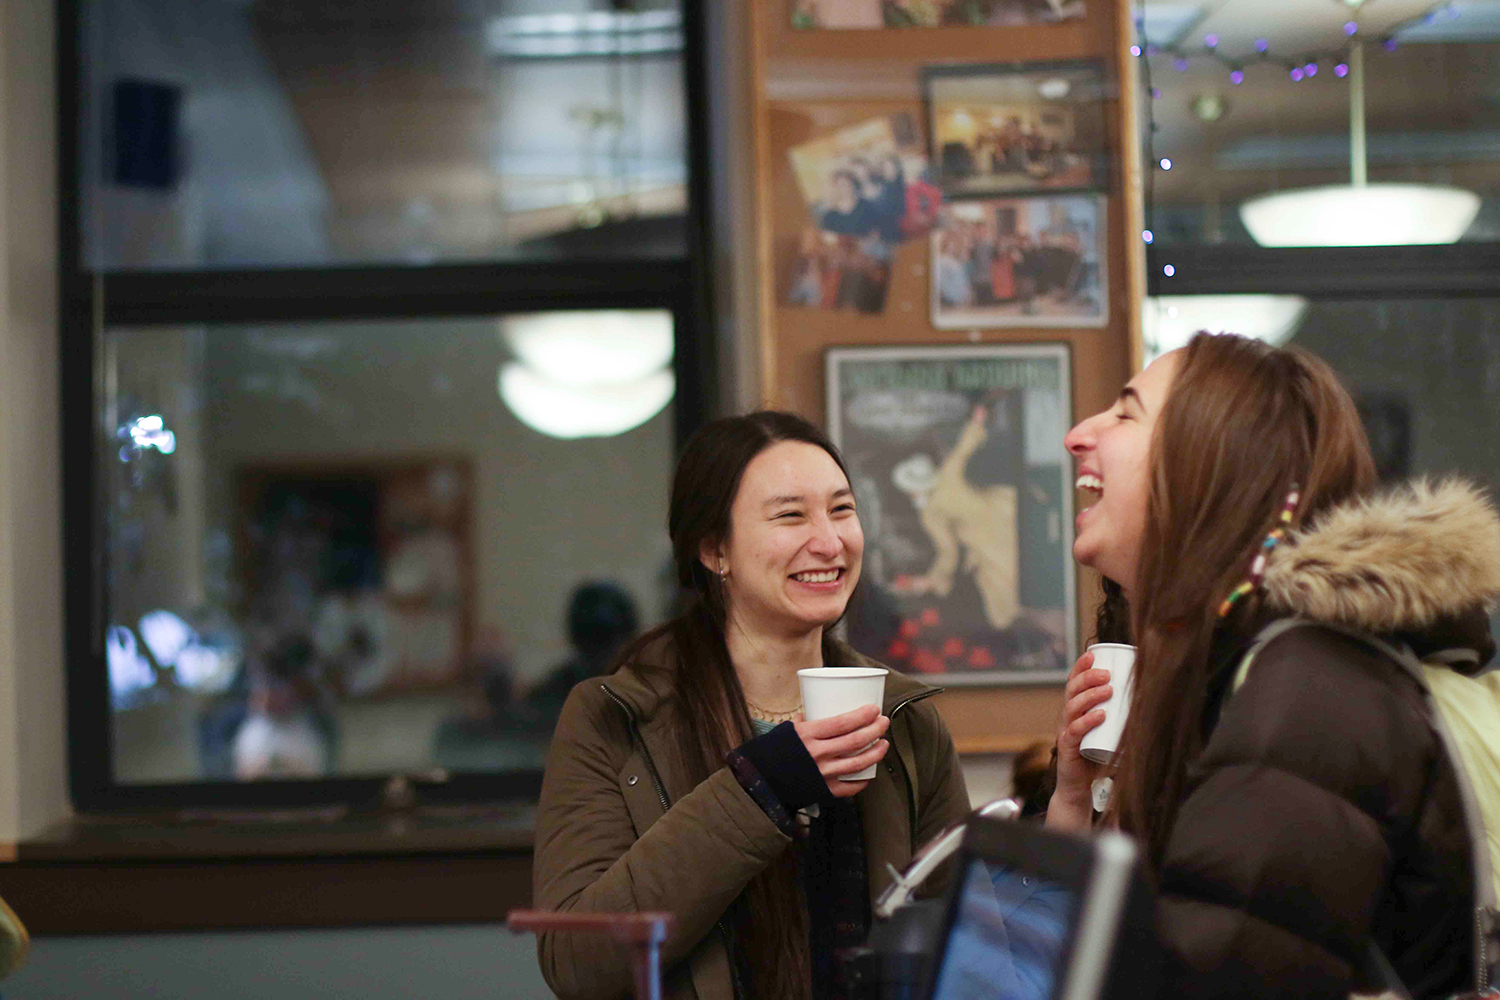 Naomi Saito '16 and Lauren Langer '16 enjoy their drinks.